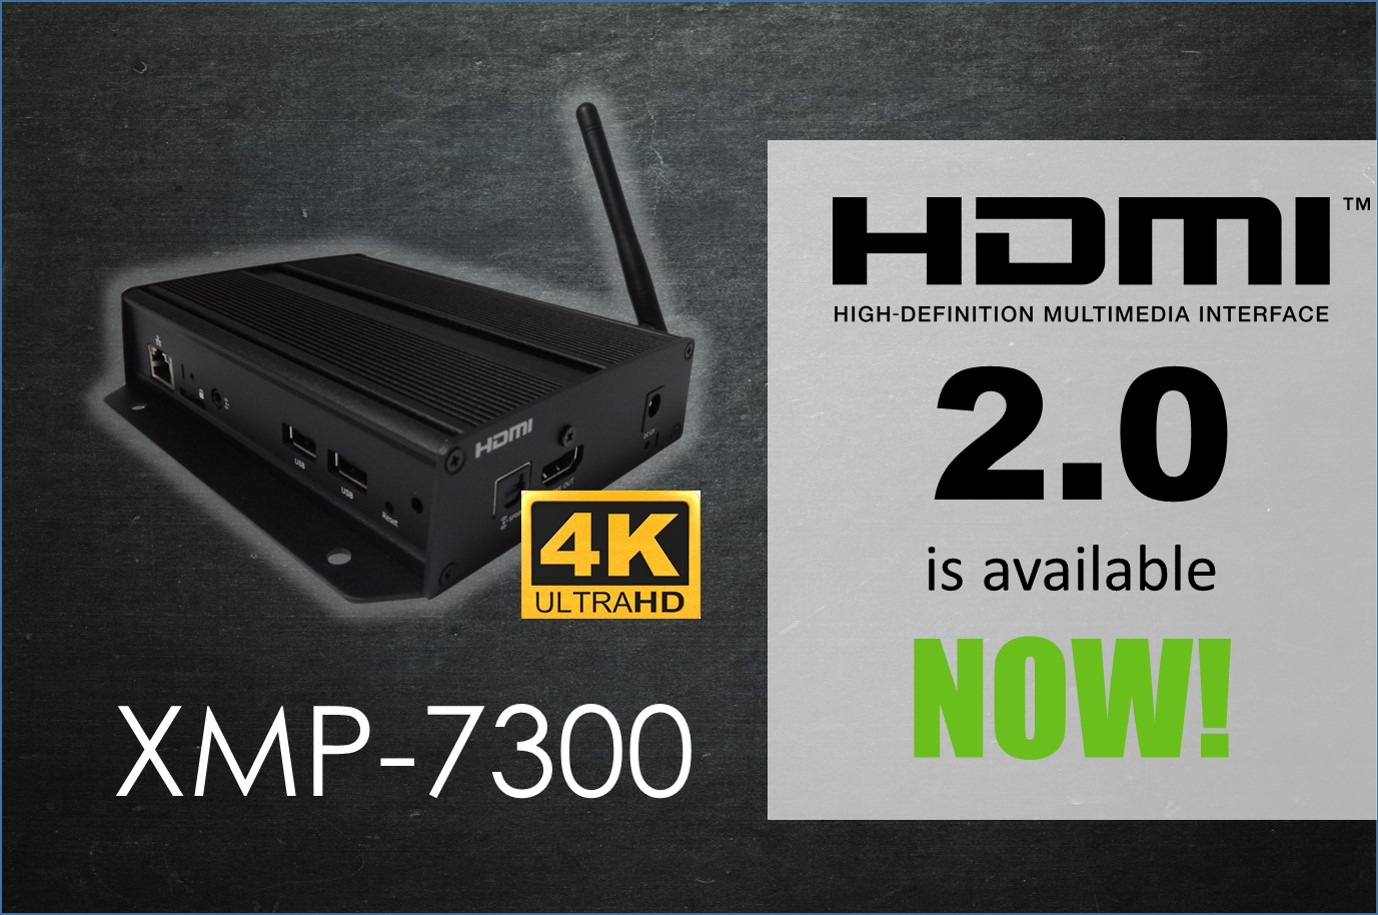 XMP-7300 Armoroid™ 4K Certified HDMI 2.0, Provides 4K@60 Performance